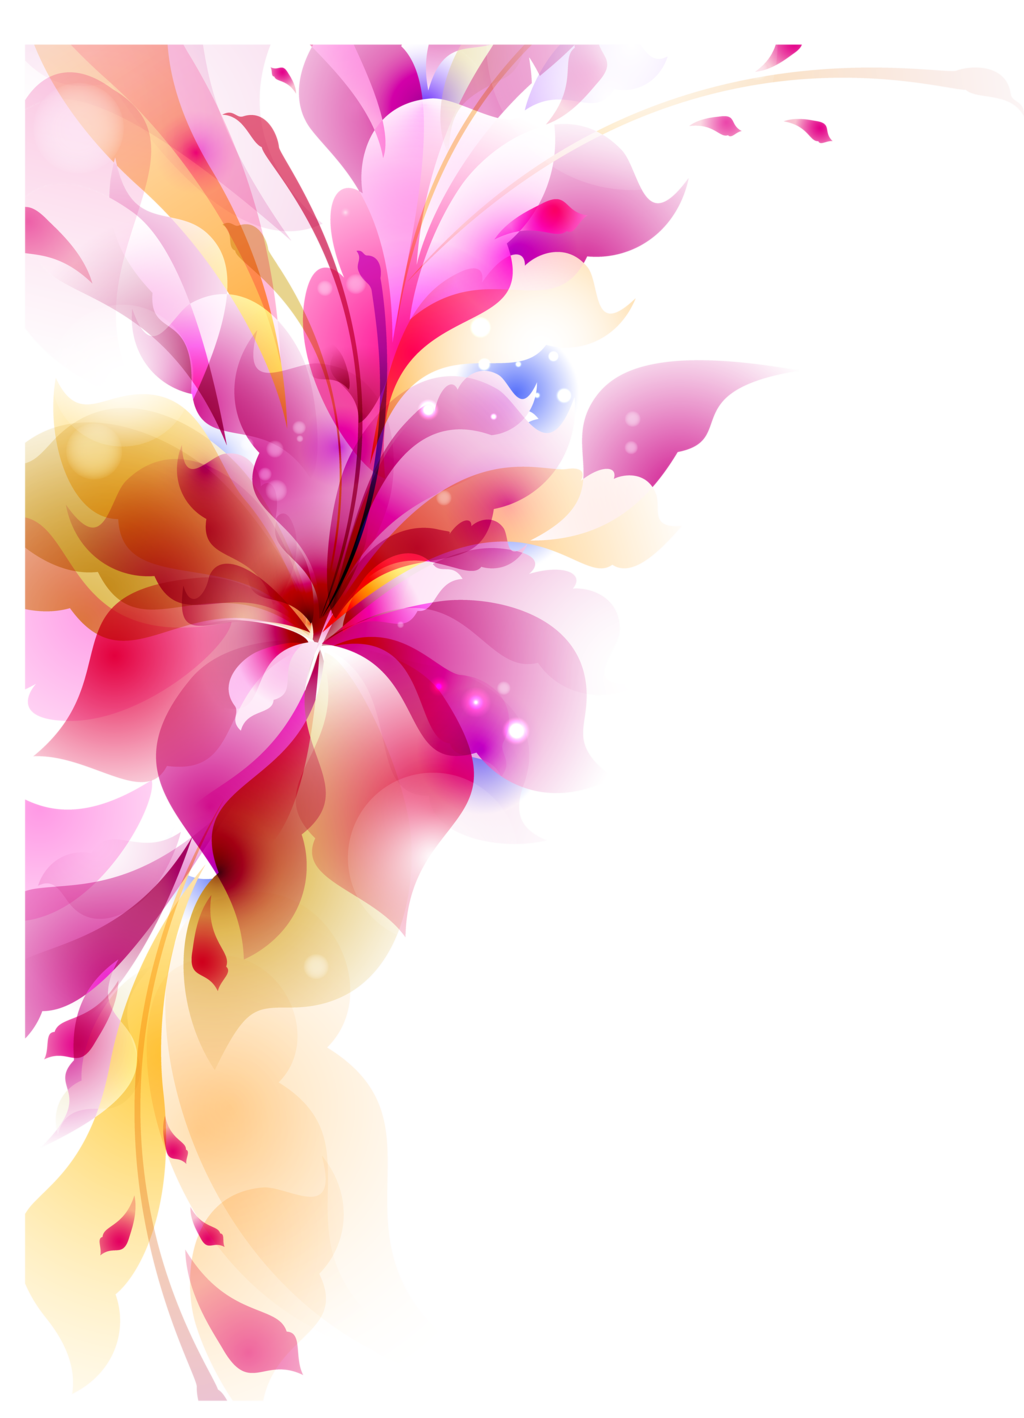 Photoshop png transparent. Abstract flower transparentpng